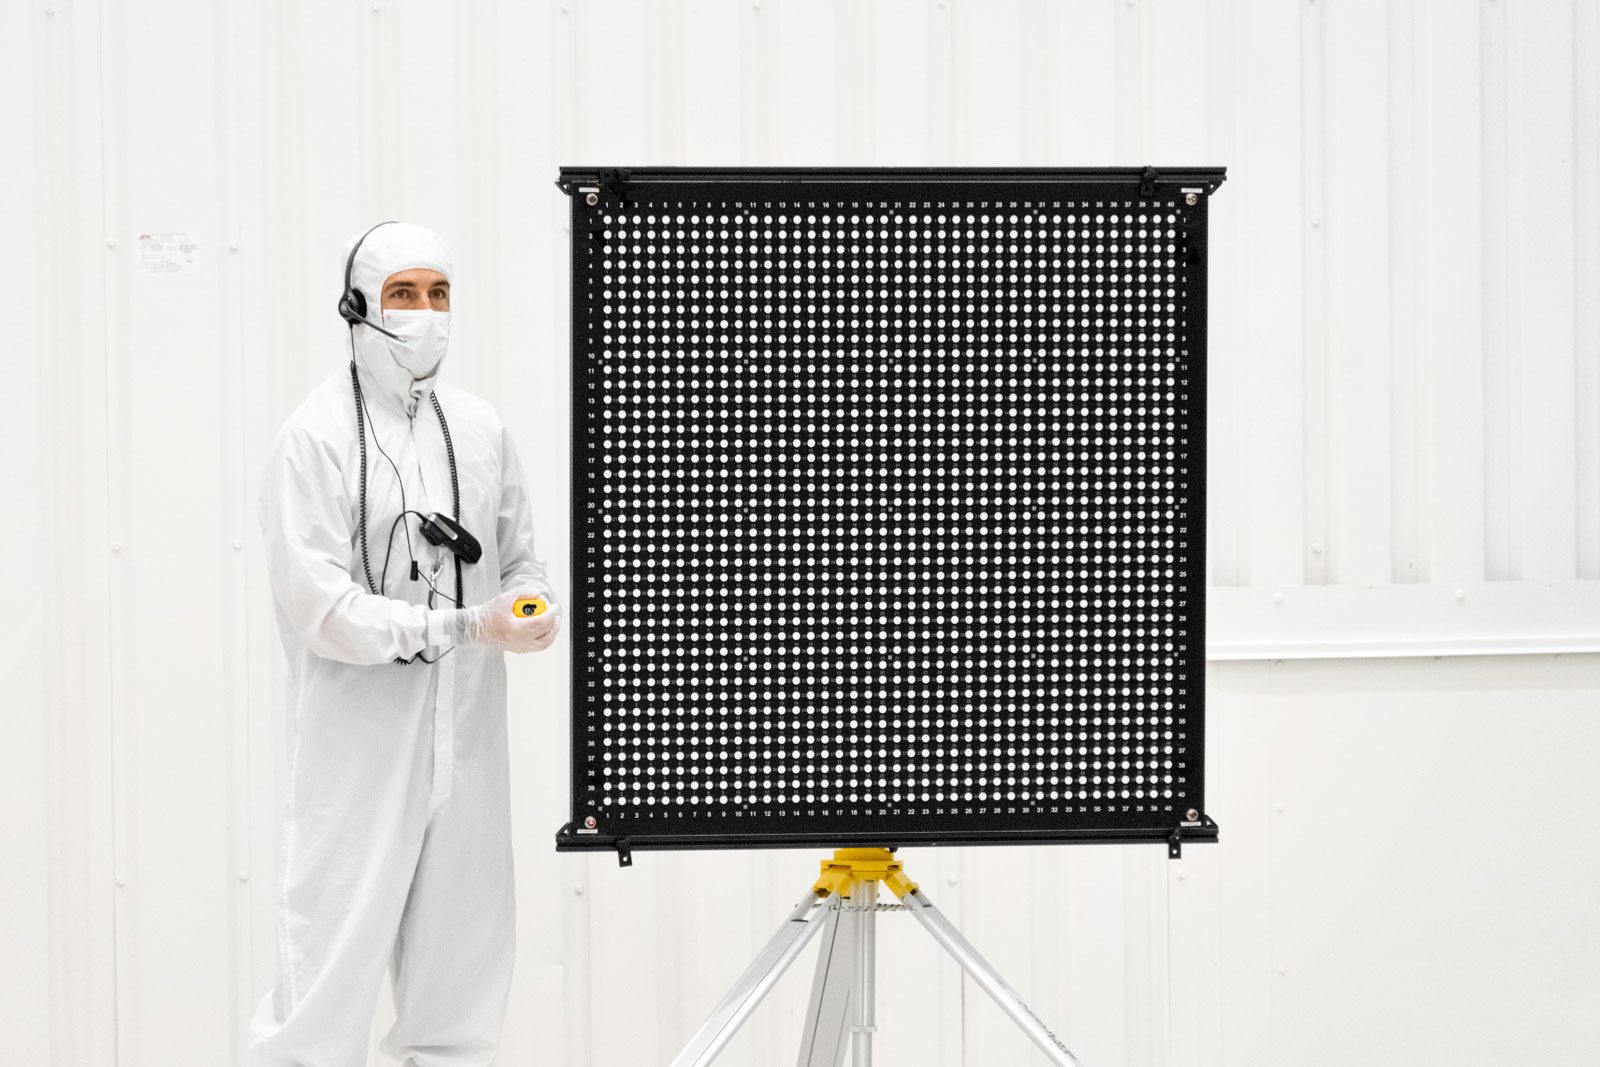 Engineer Chris Chatellier stands next to a target board with 1,600 dots. The board was one of several used on July 23, 2019, in the Spacecraft Assembly Facility's High Bay 1 at NASA's Jet Propulsion Laboratory in Pasadena, California, to calibrate the forward-facing cameras on the Mars 2020 rover.